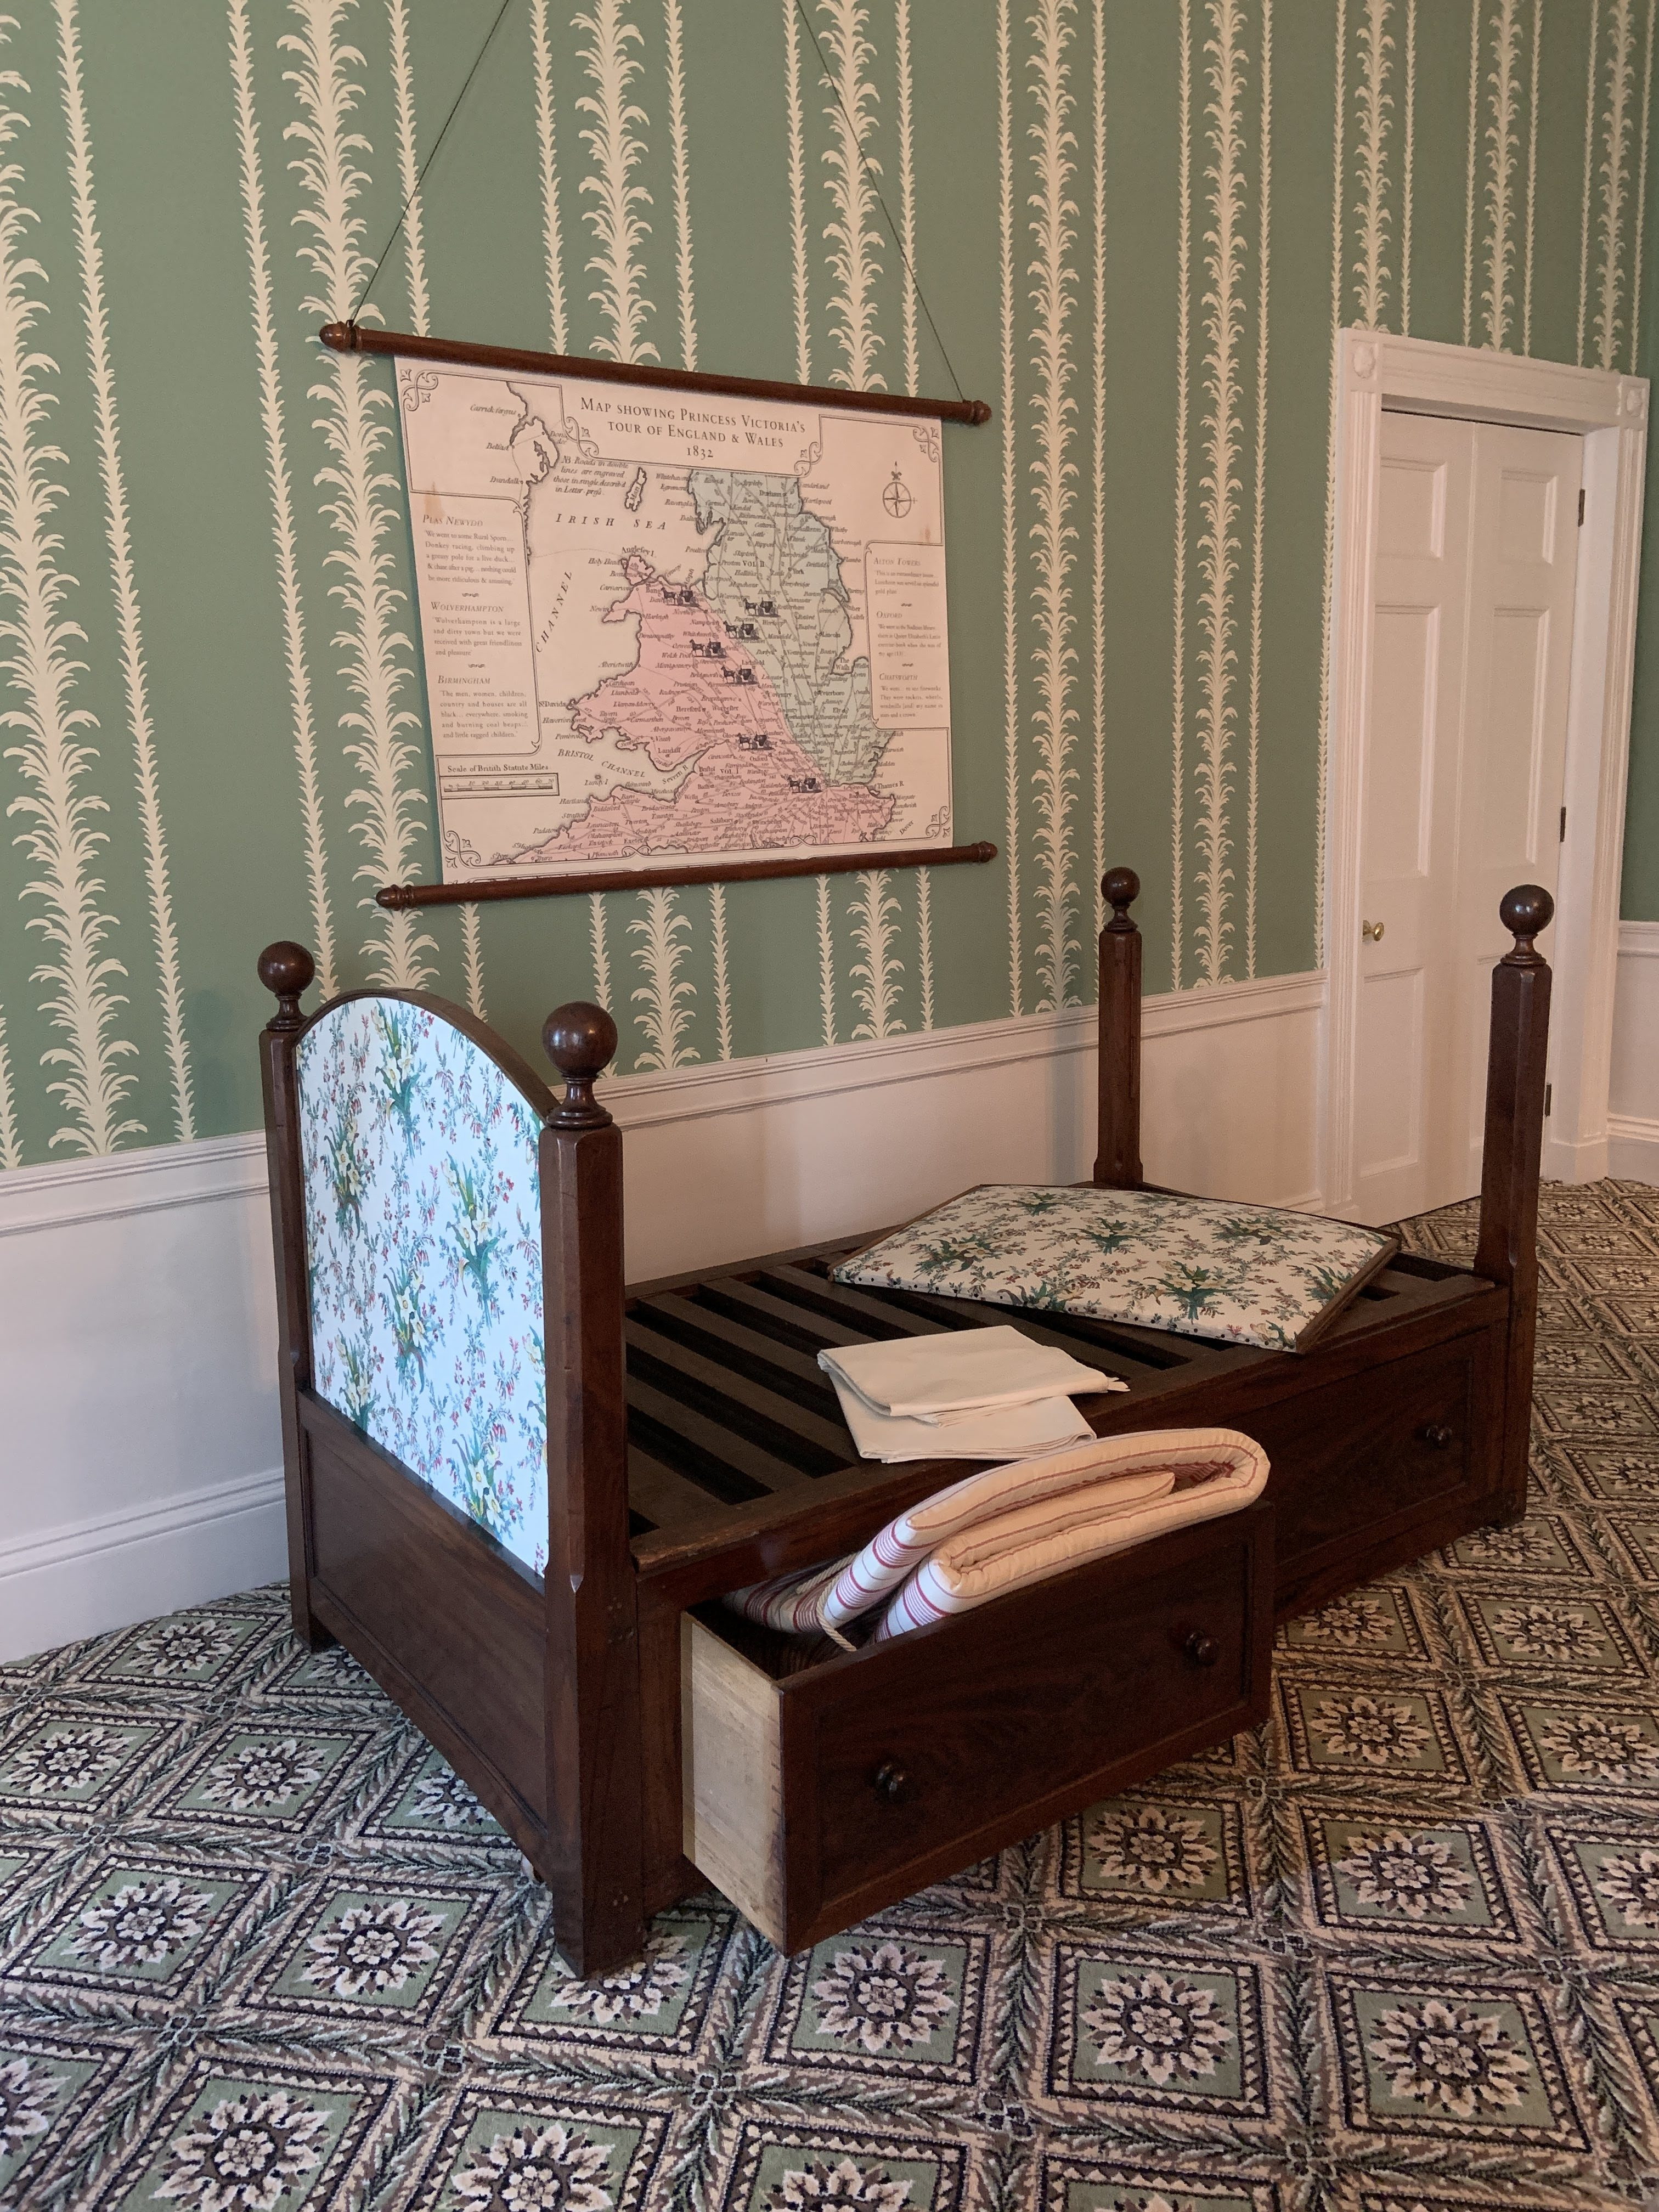 Kensington Palace - Victoria's travelling bed